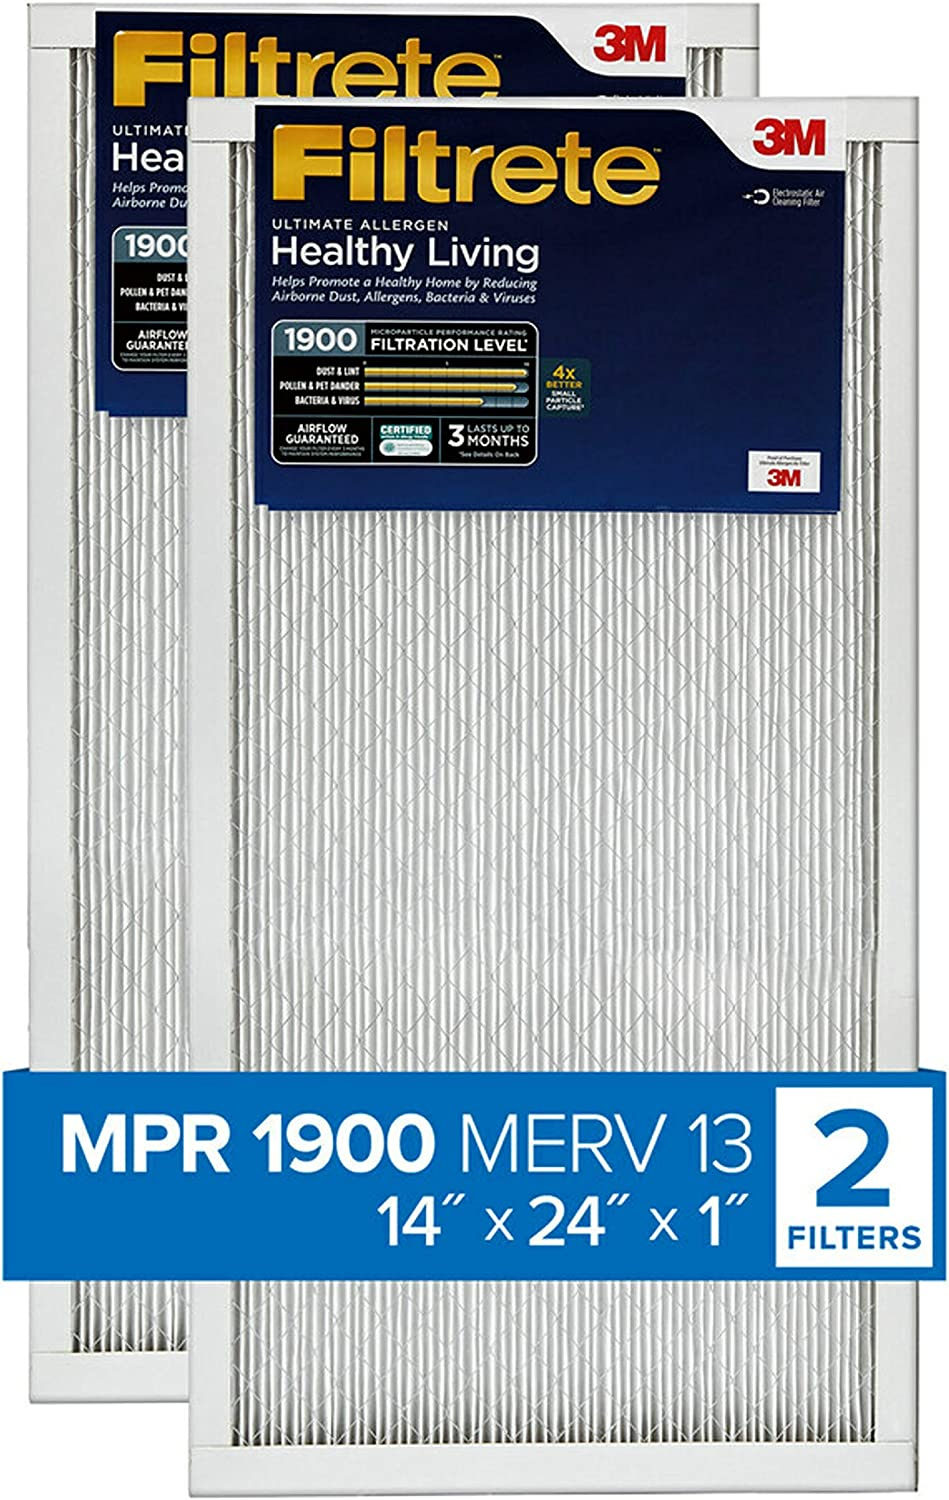 Nordic Pure 14x24x1 MPR 1900 Healthy Living Maximum Allergen Reduction Replacement AC Furnace Air Filters 4 Pack